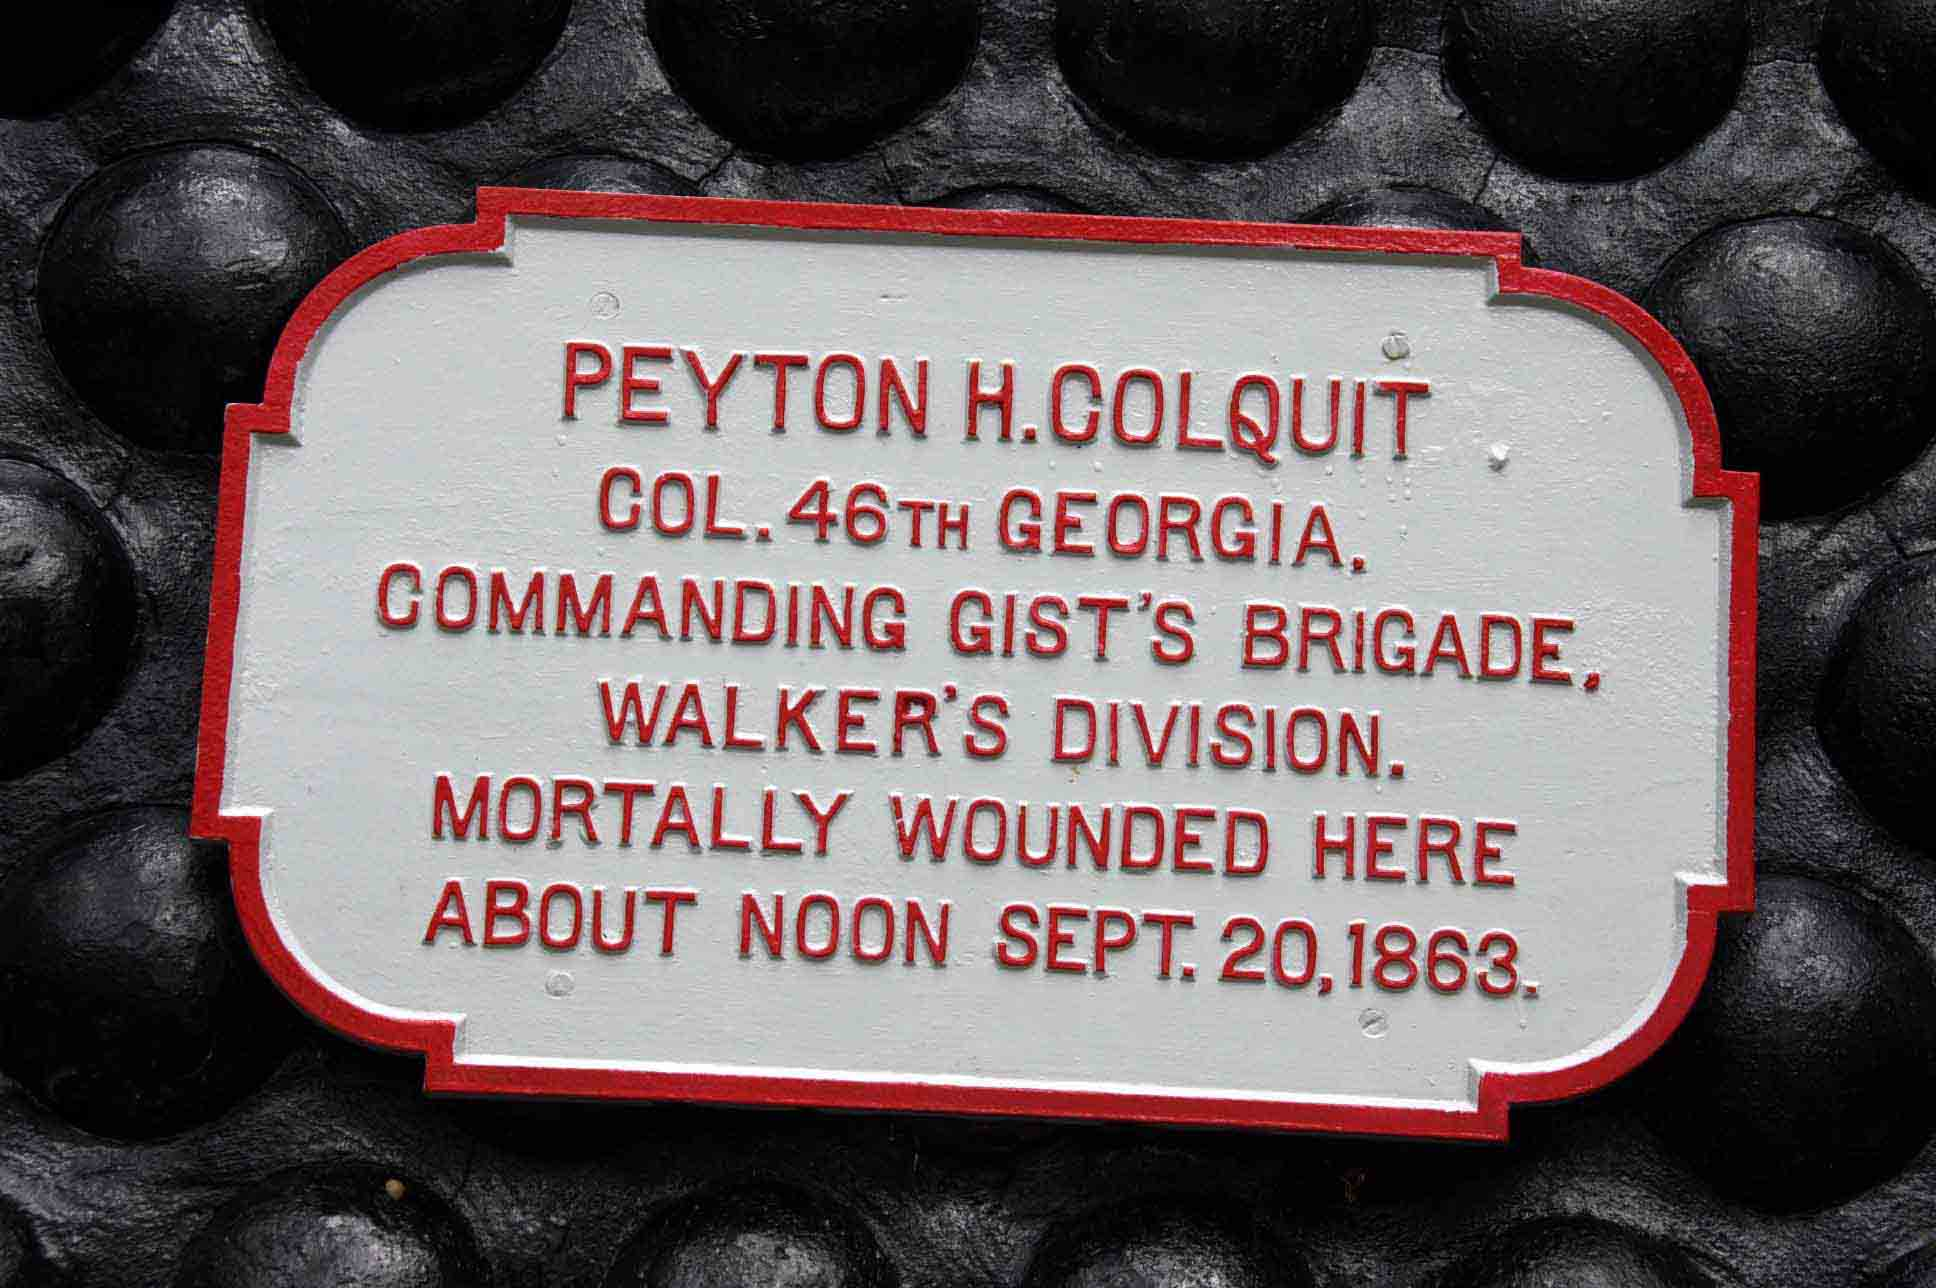 Peyton H. Colquit Memorial Shell Monument, click photo to enlarge.